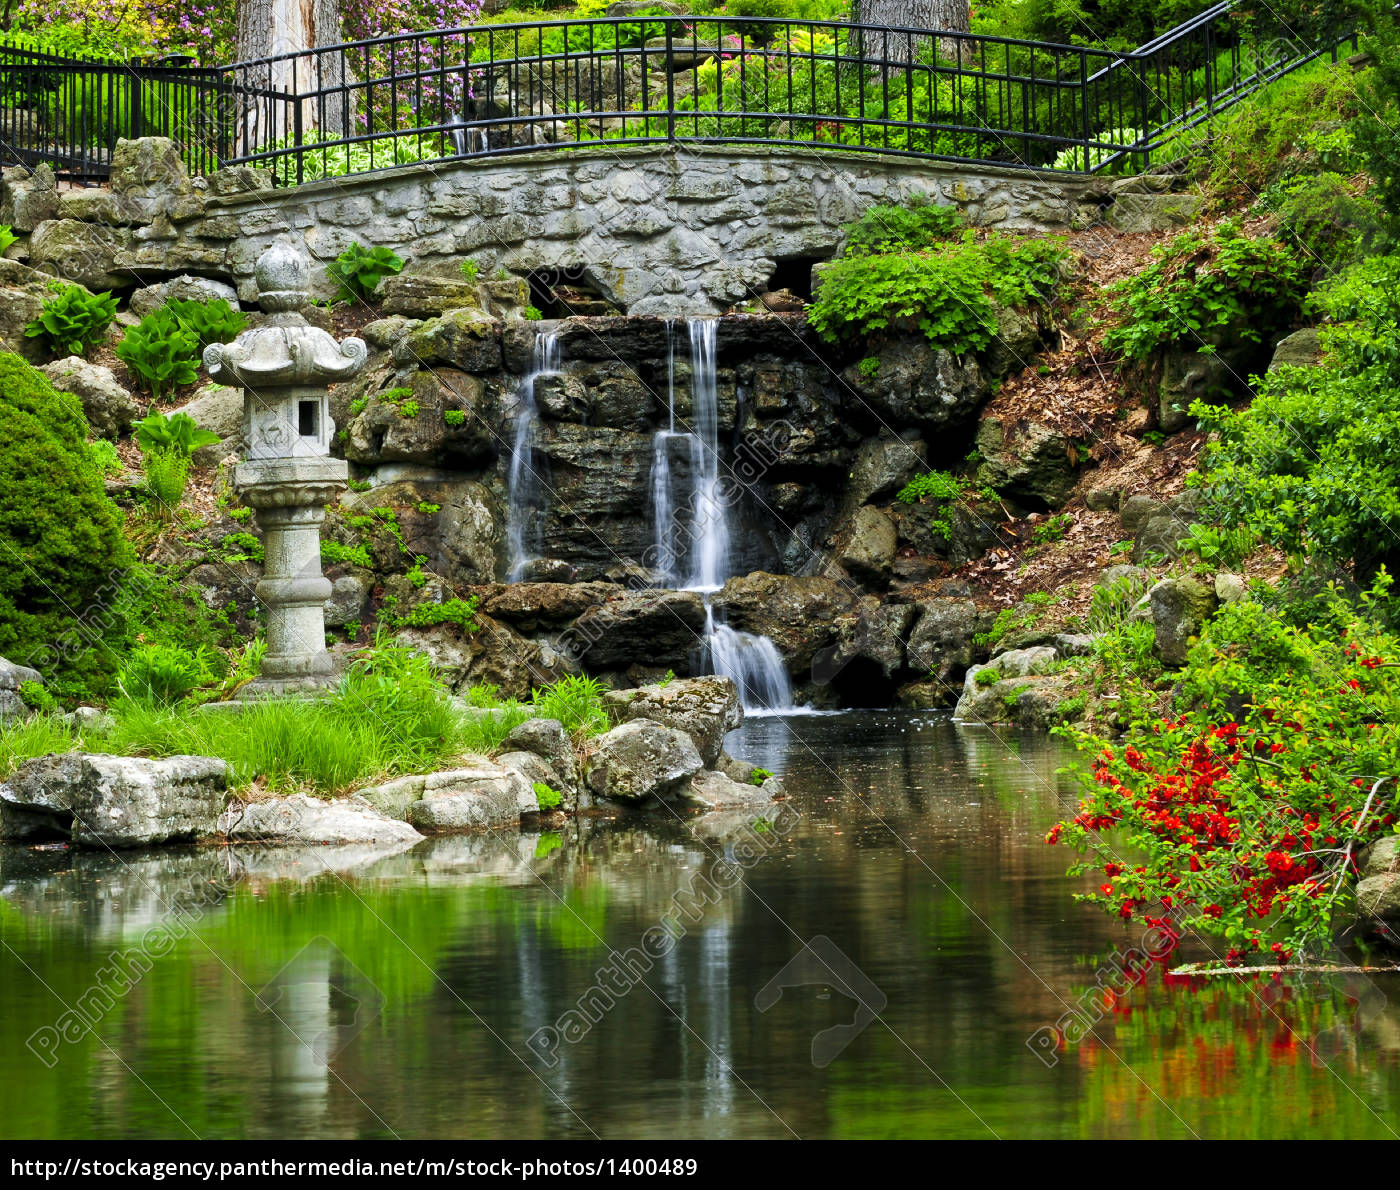 cascading, waterfall, and, pond - 1400489